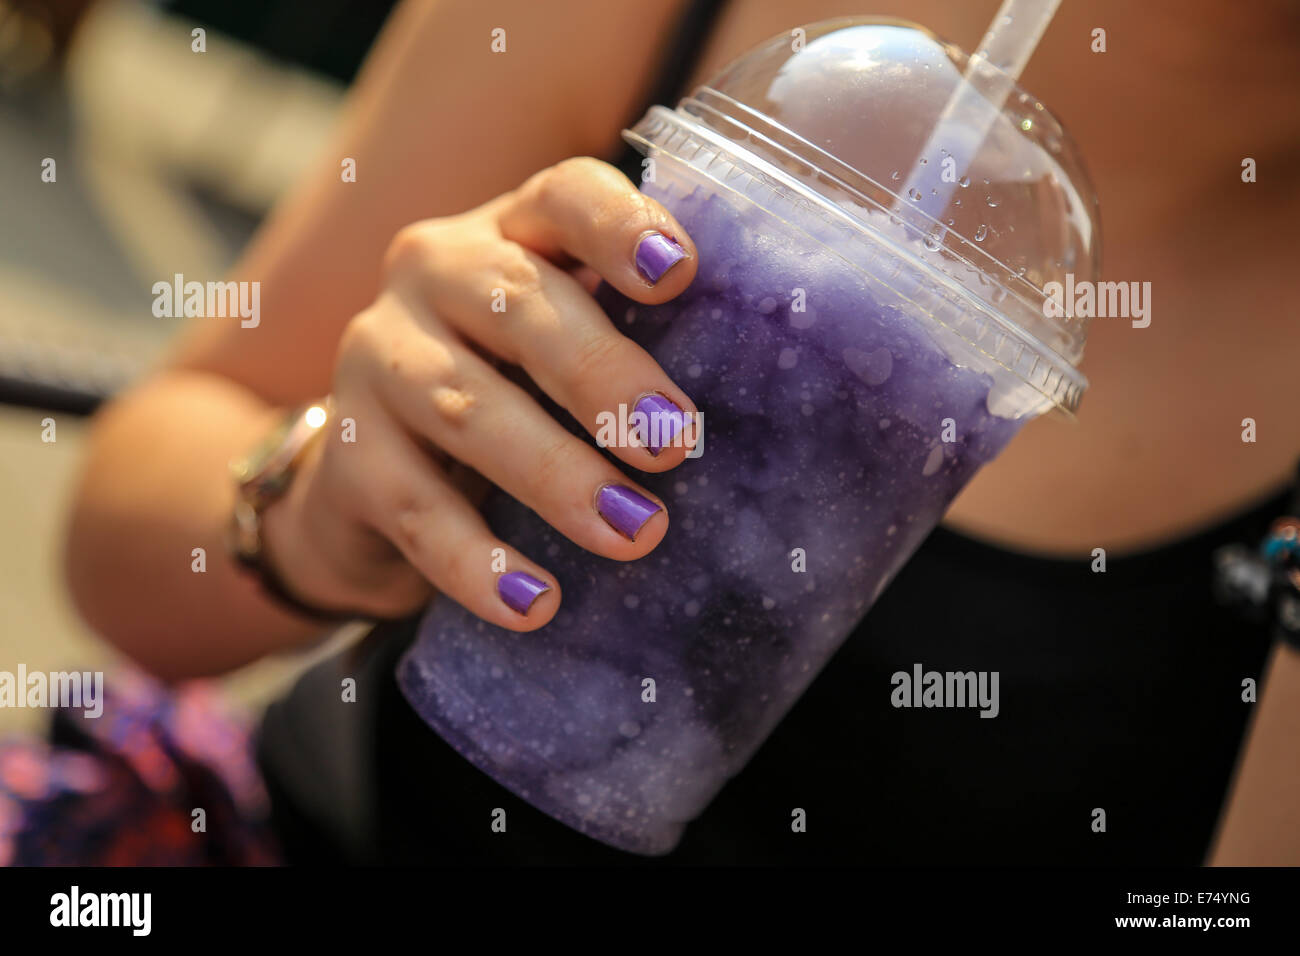 Matching purple nail polish and grape ice drink to cool off on a hot day in the sun in Hereford - Stock Image